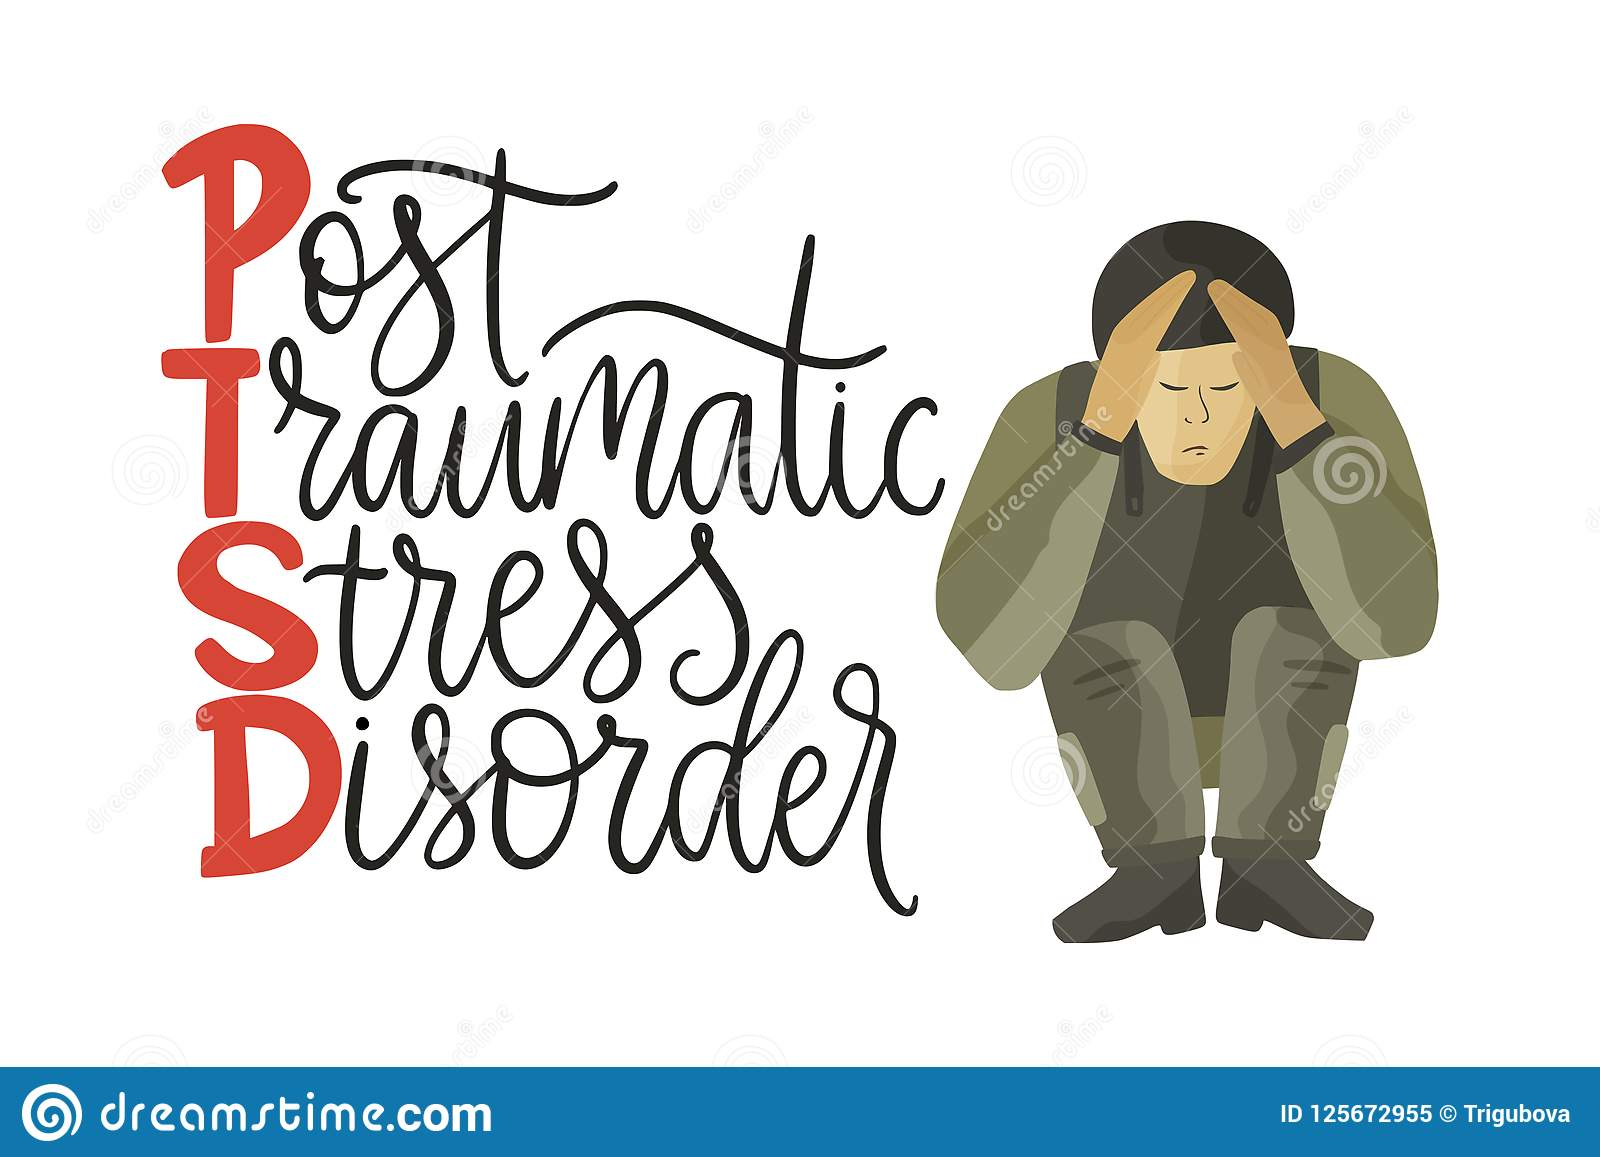 Ptsd Post Traumatic Stress Disorder Vector Illustration